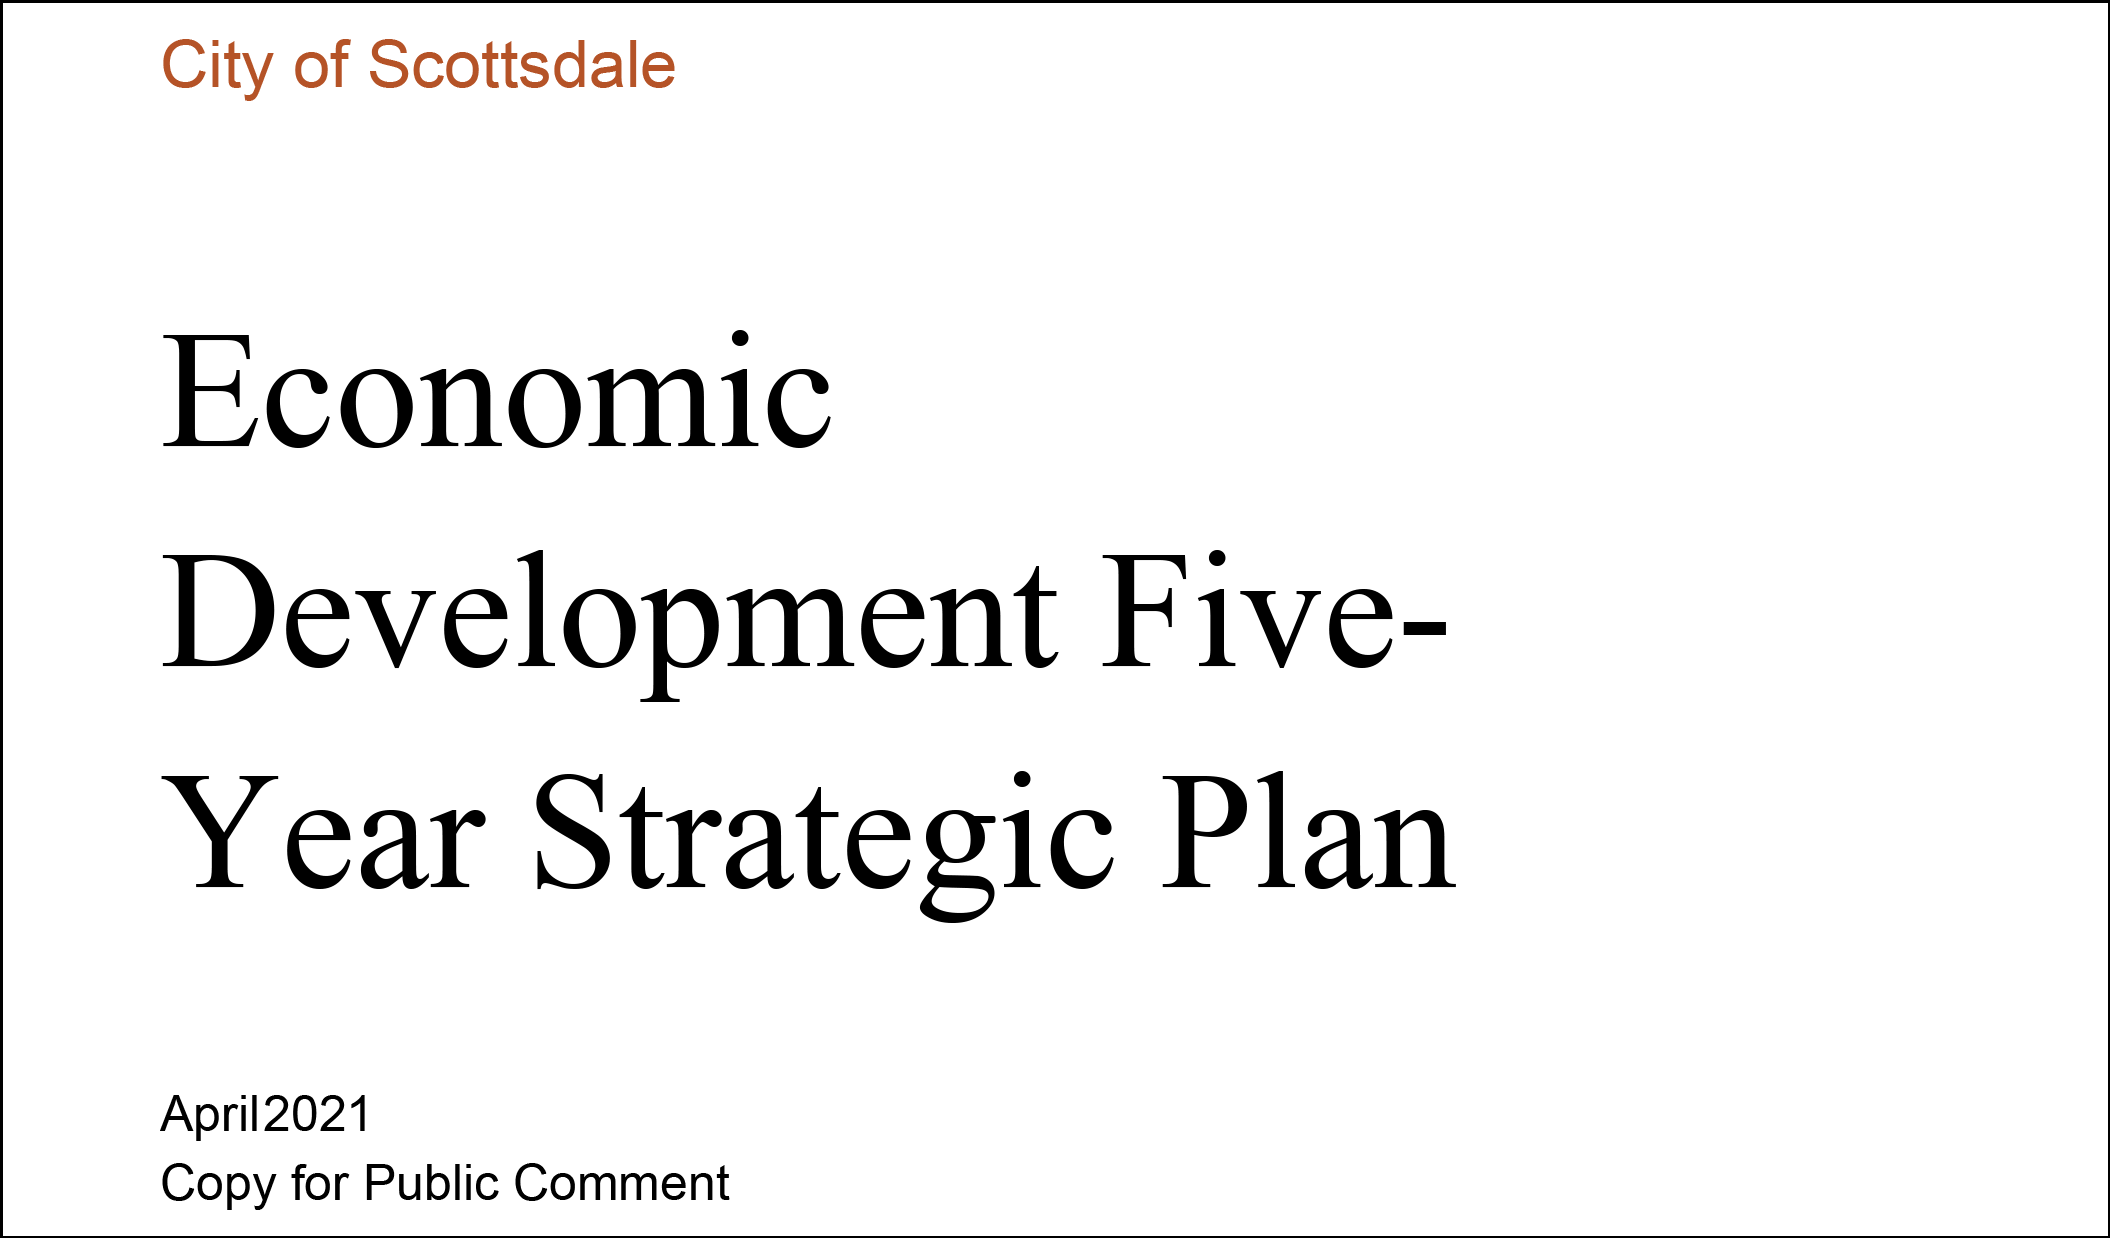 Scottsdale Economic Development 5-Year Strategic Plan April 2021